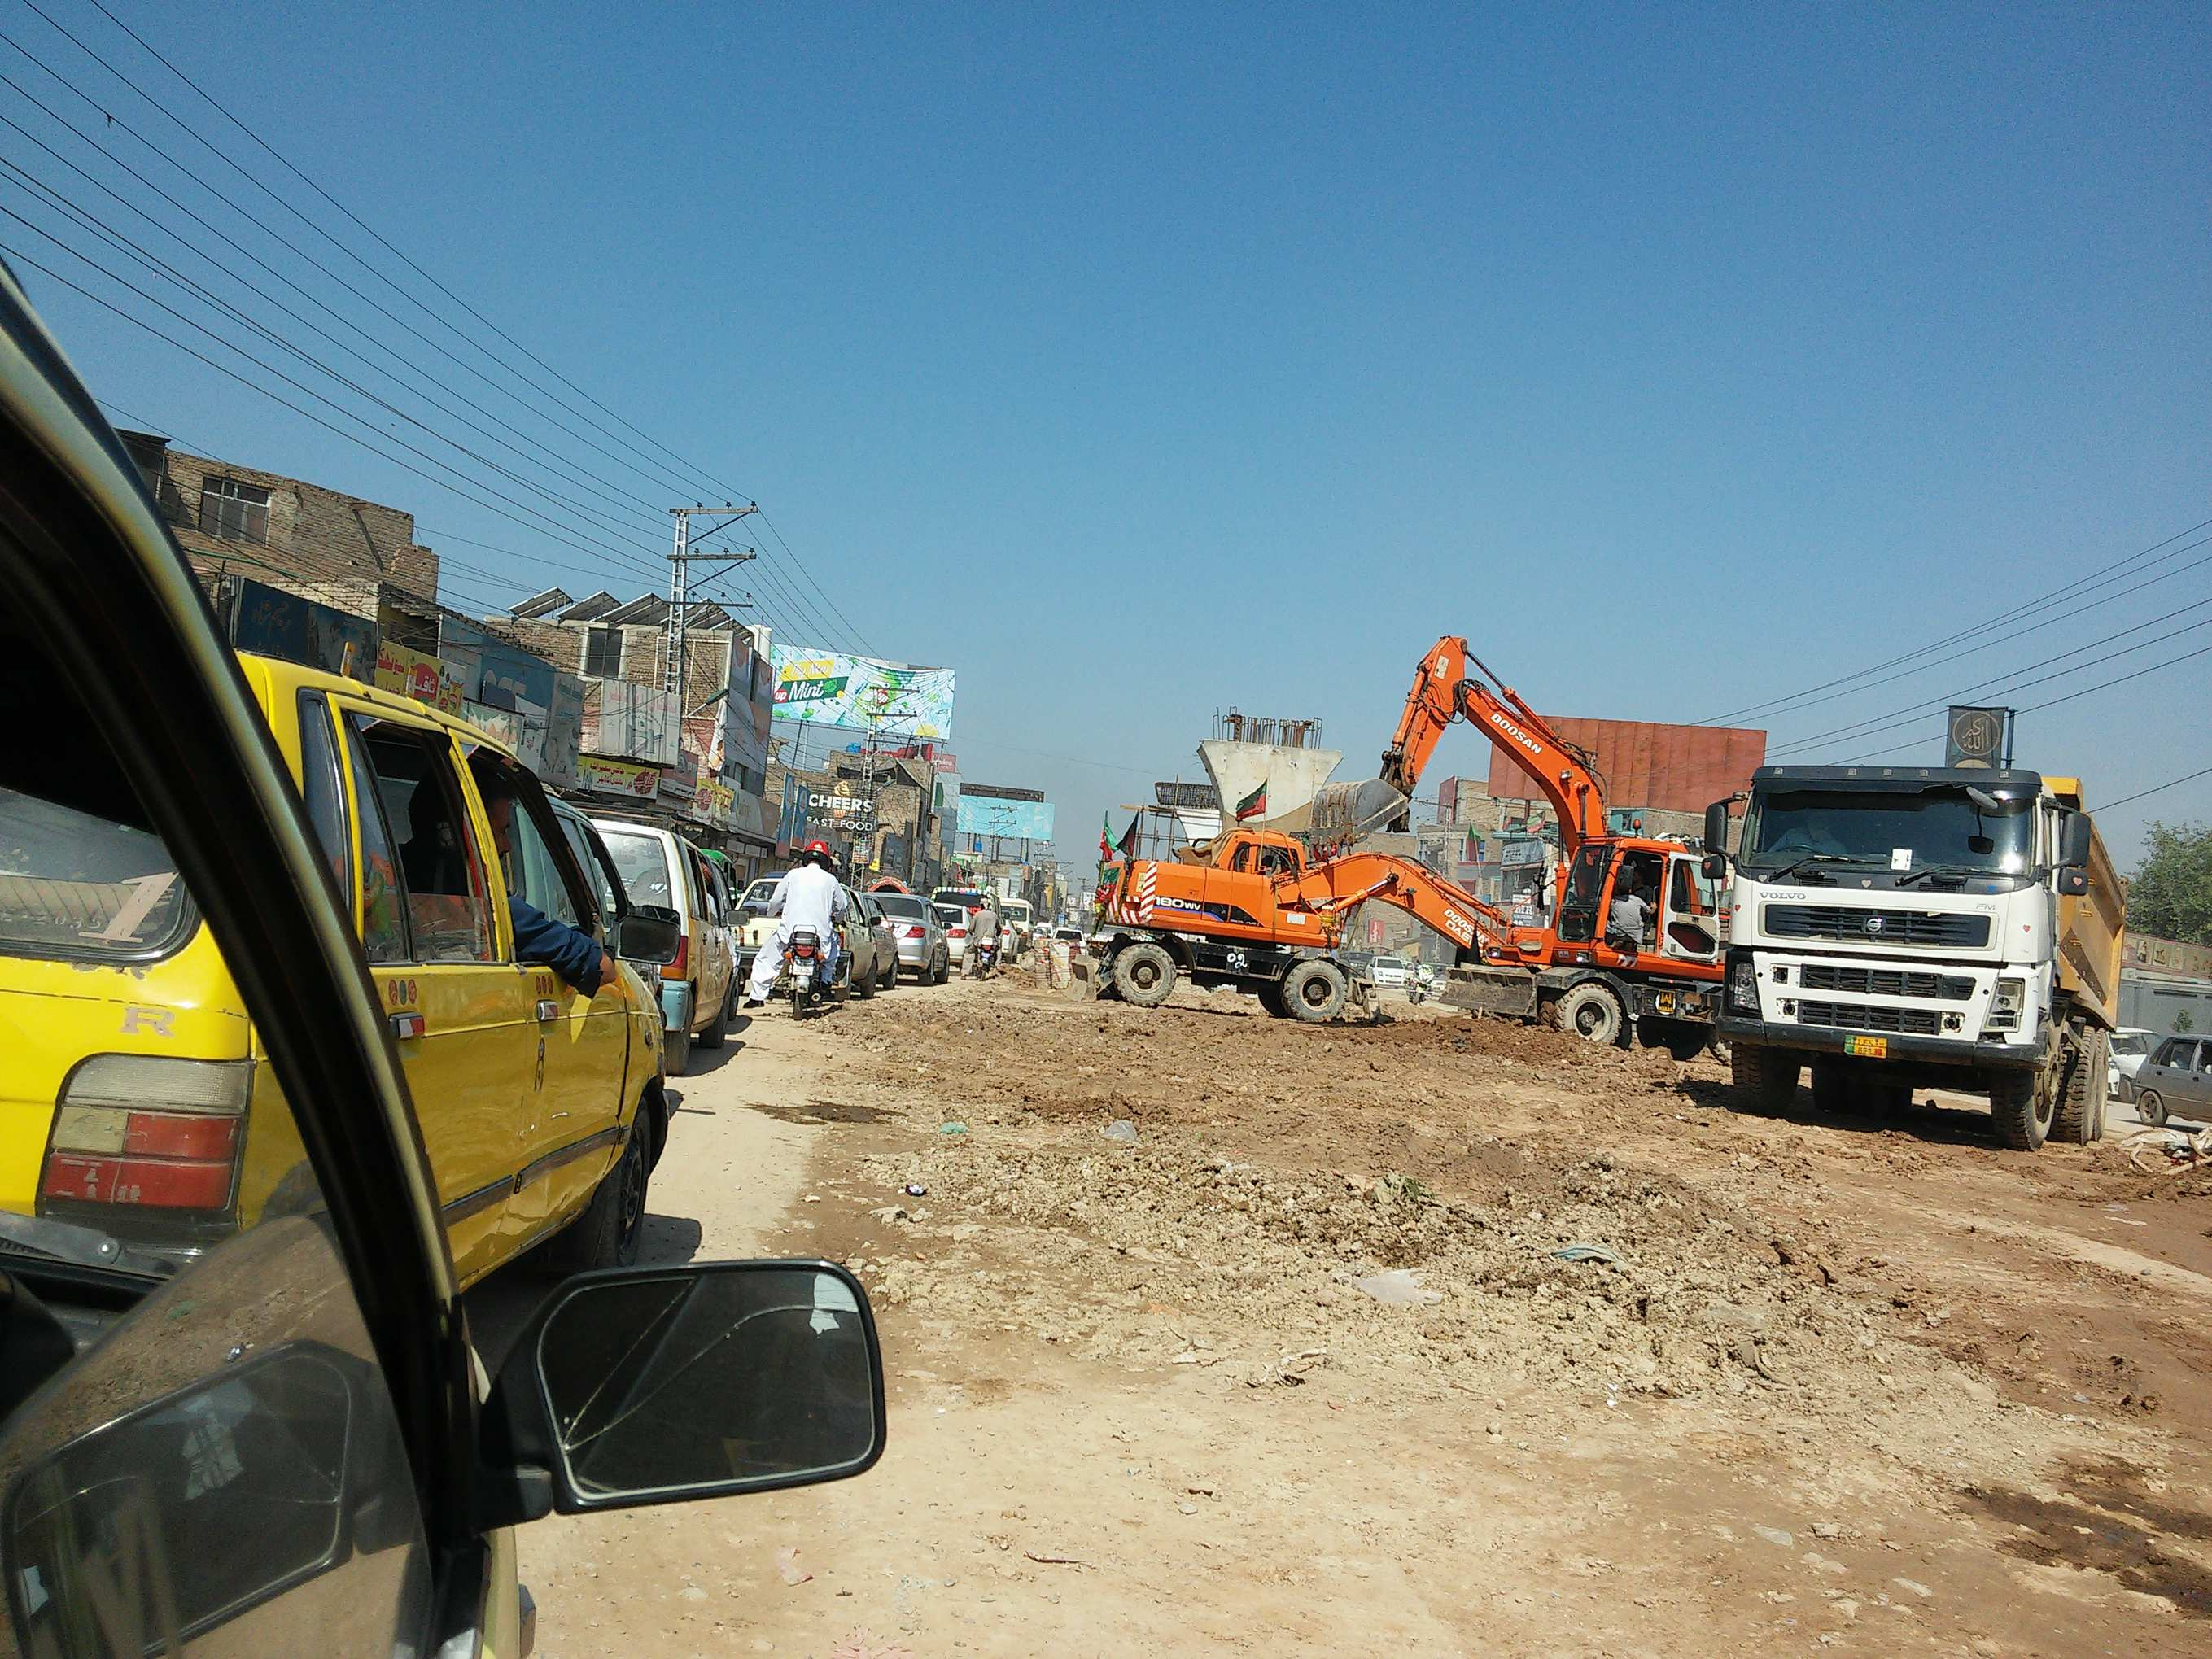 Cars in stand still traffic with nothing to seperate them from the construction site of BRT less than a meter away